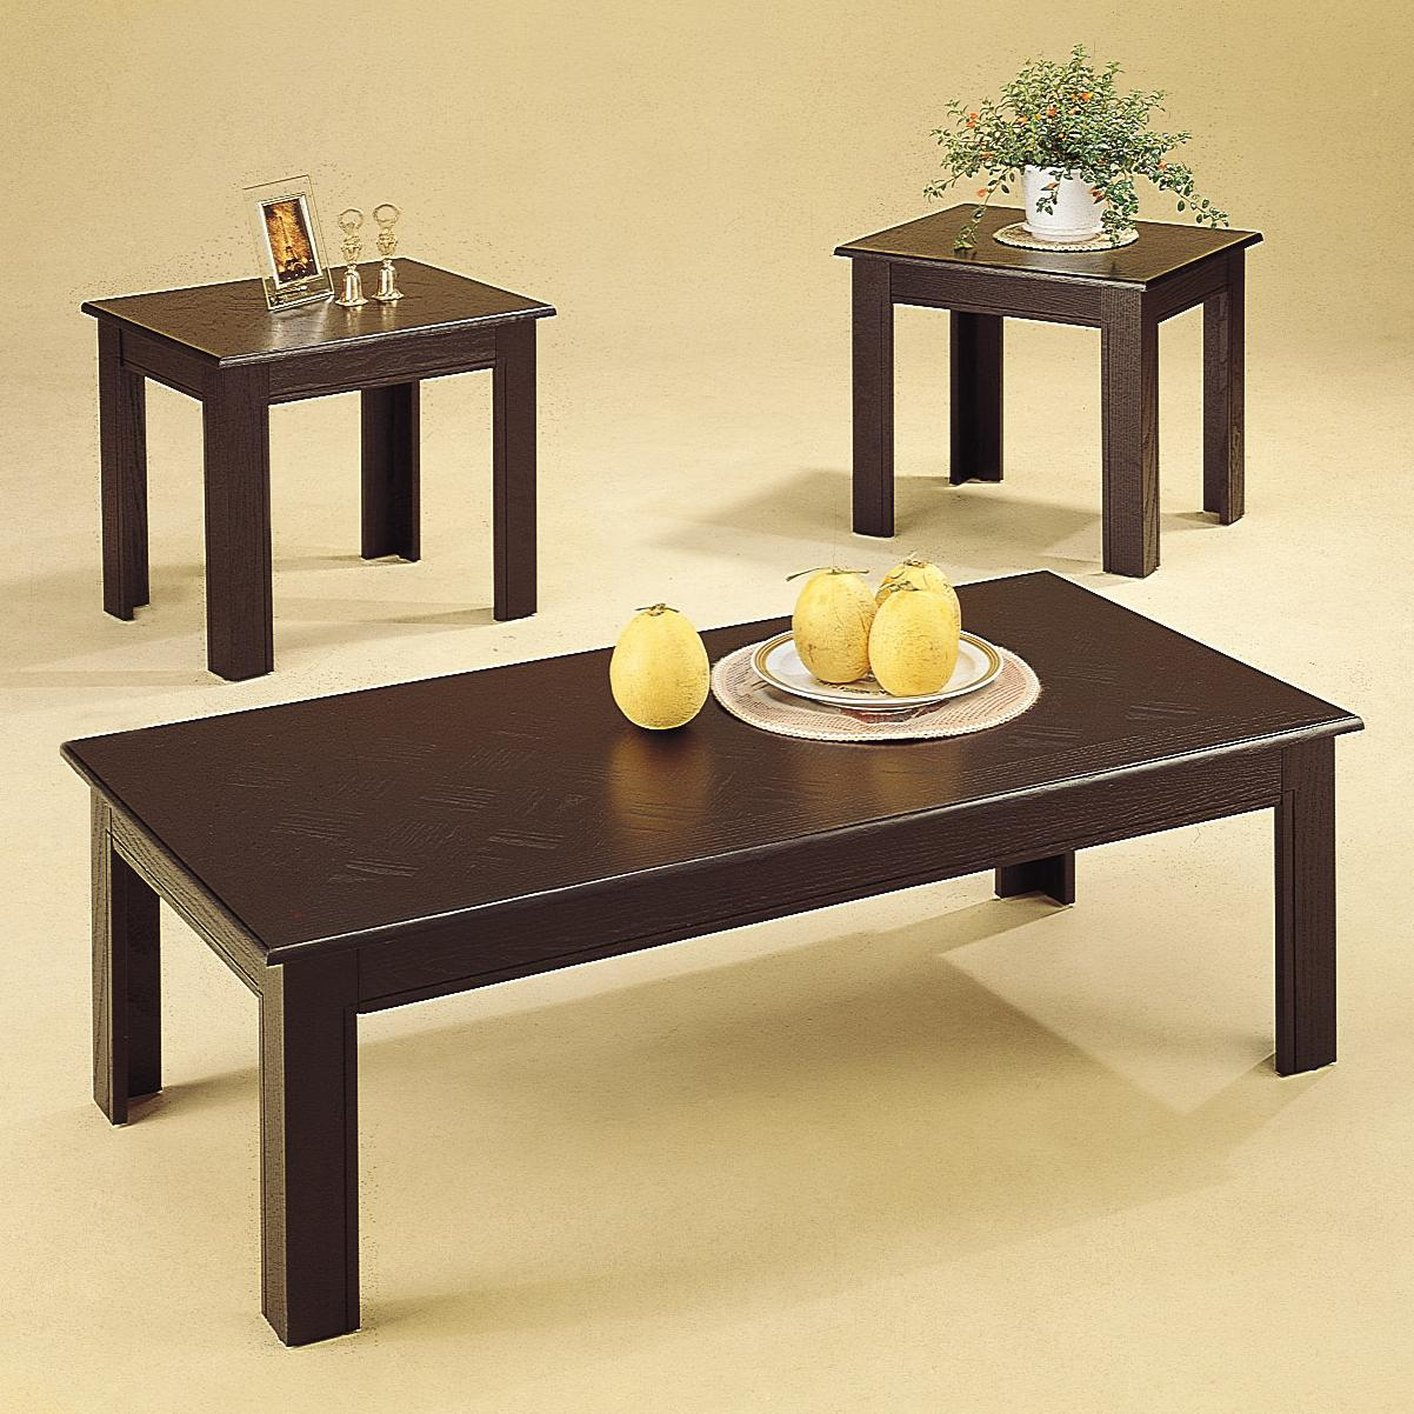 acosta black wood coffee table set  stealasofa furniture outlet  - acosta black wood coffee table set